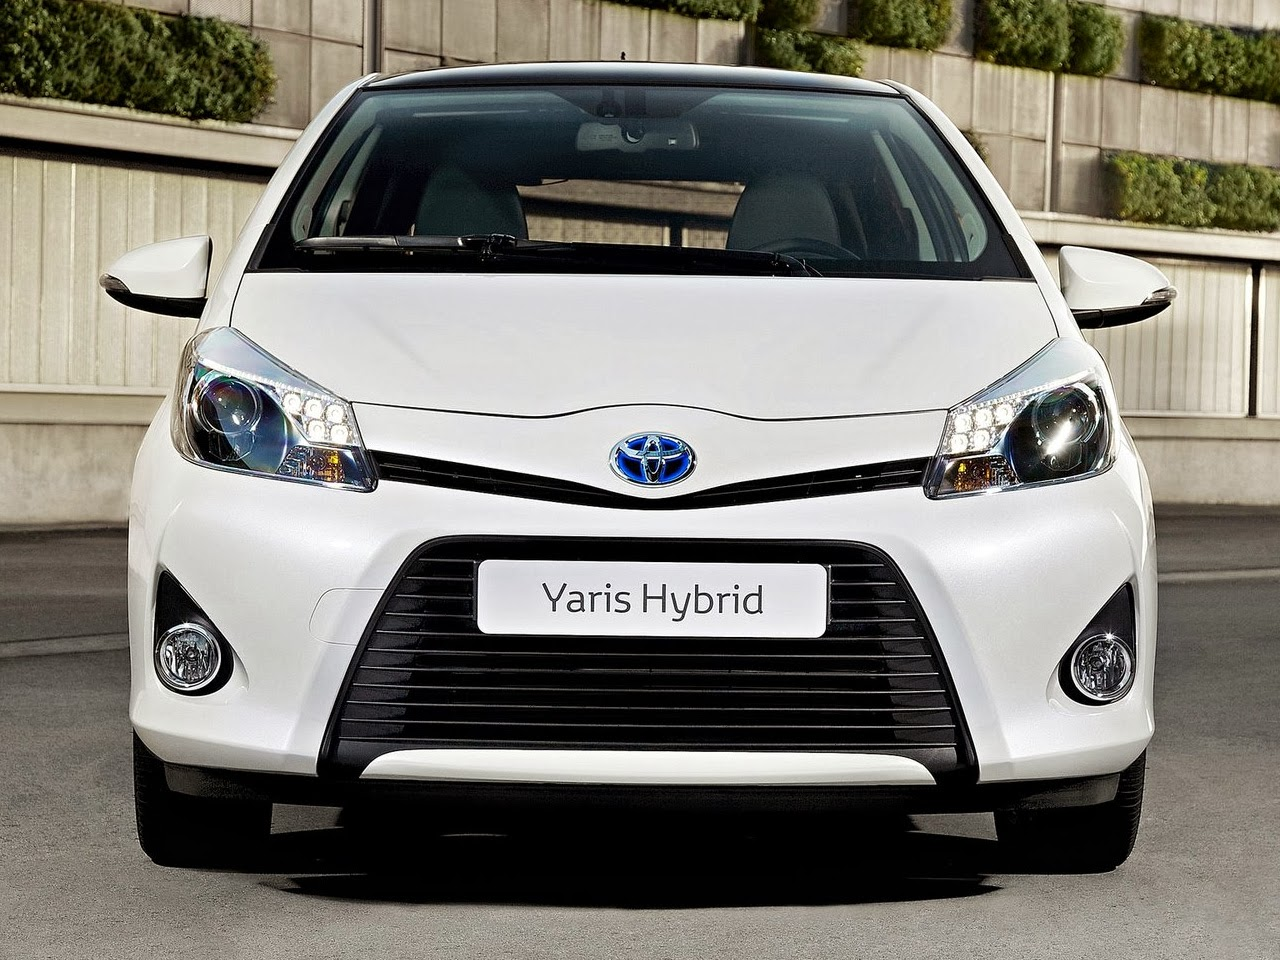 sport cars design new toyota yaris modern in style and technology. Black Bedroom Furniture Sets. Home Design Ideas